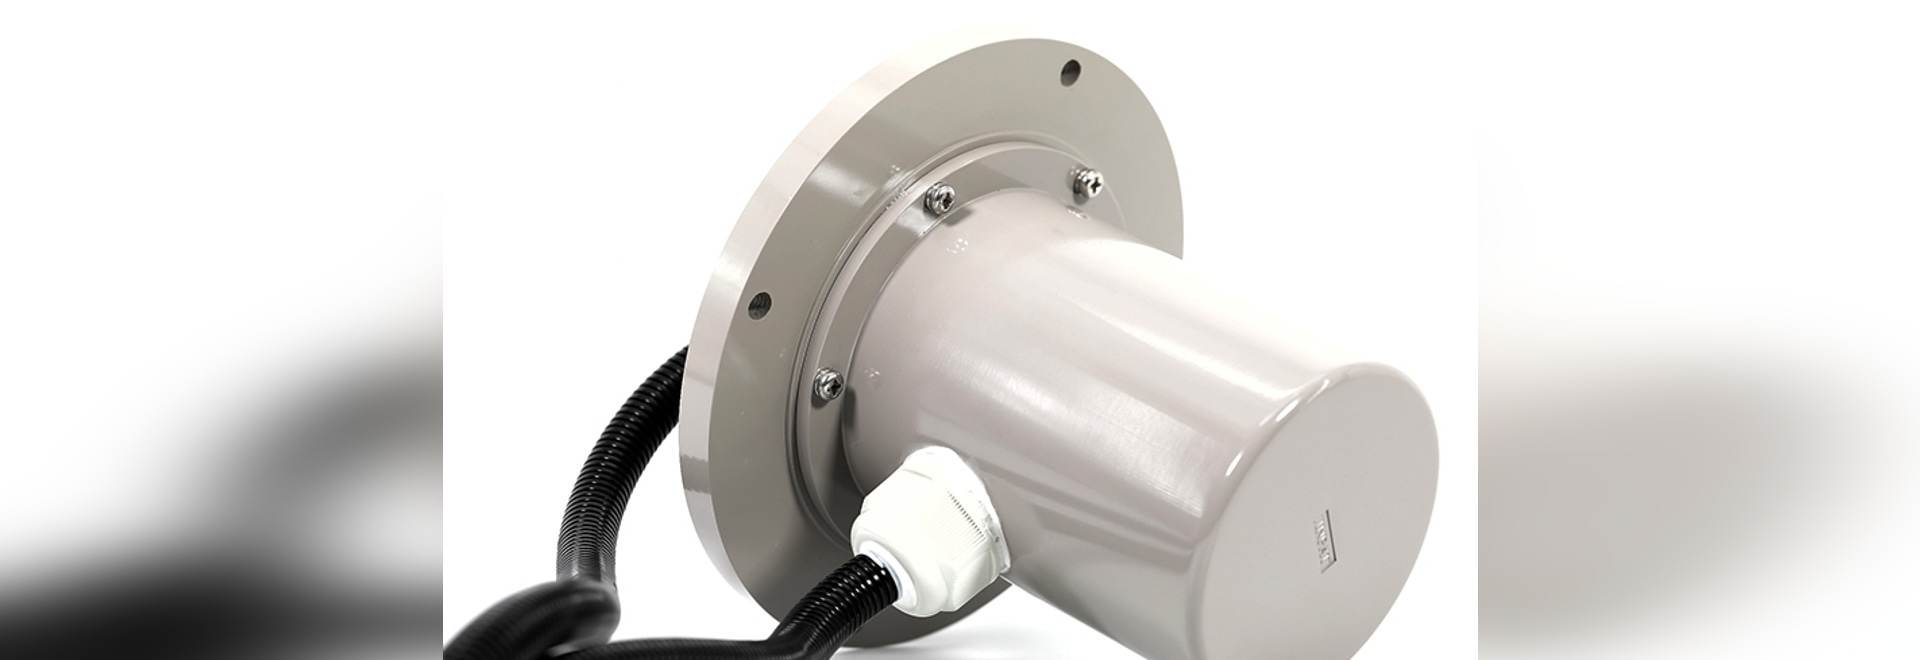 Slip rings with control signal designed special for duty crane